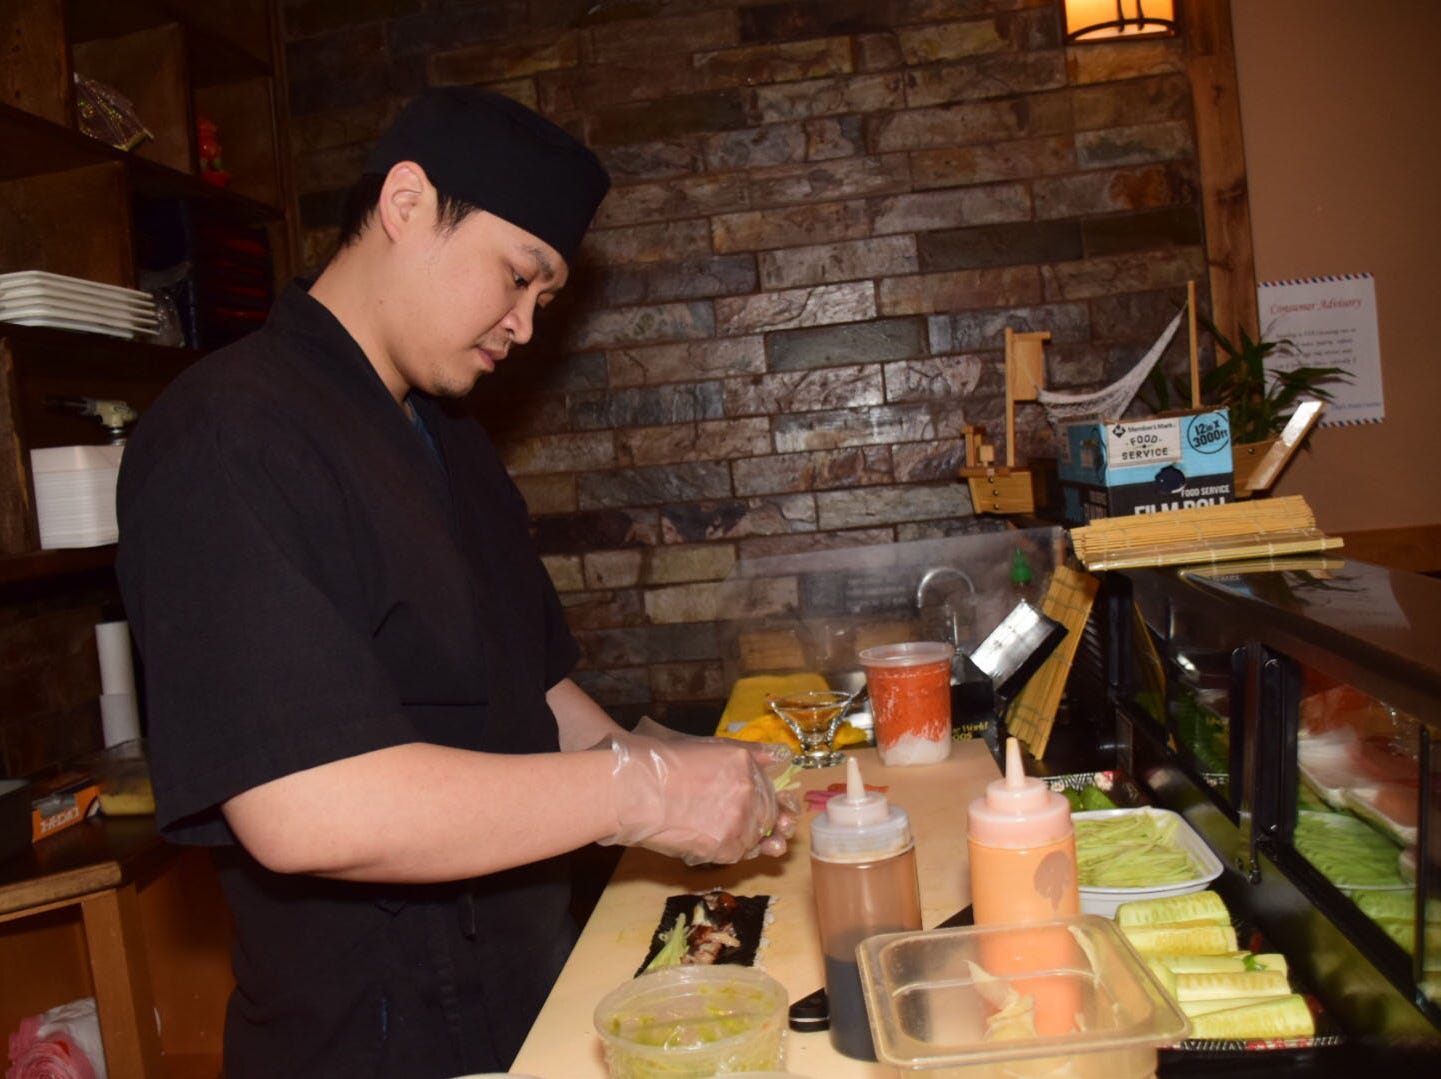 John Jiang prepares sushi made to order at Chef's Asian Cuisine Thursday, Jan. 24.